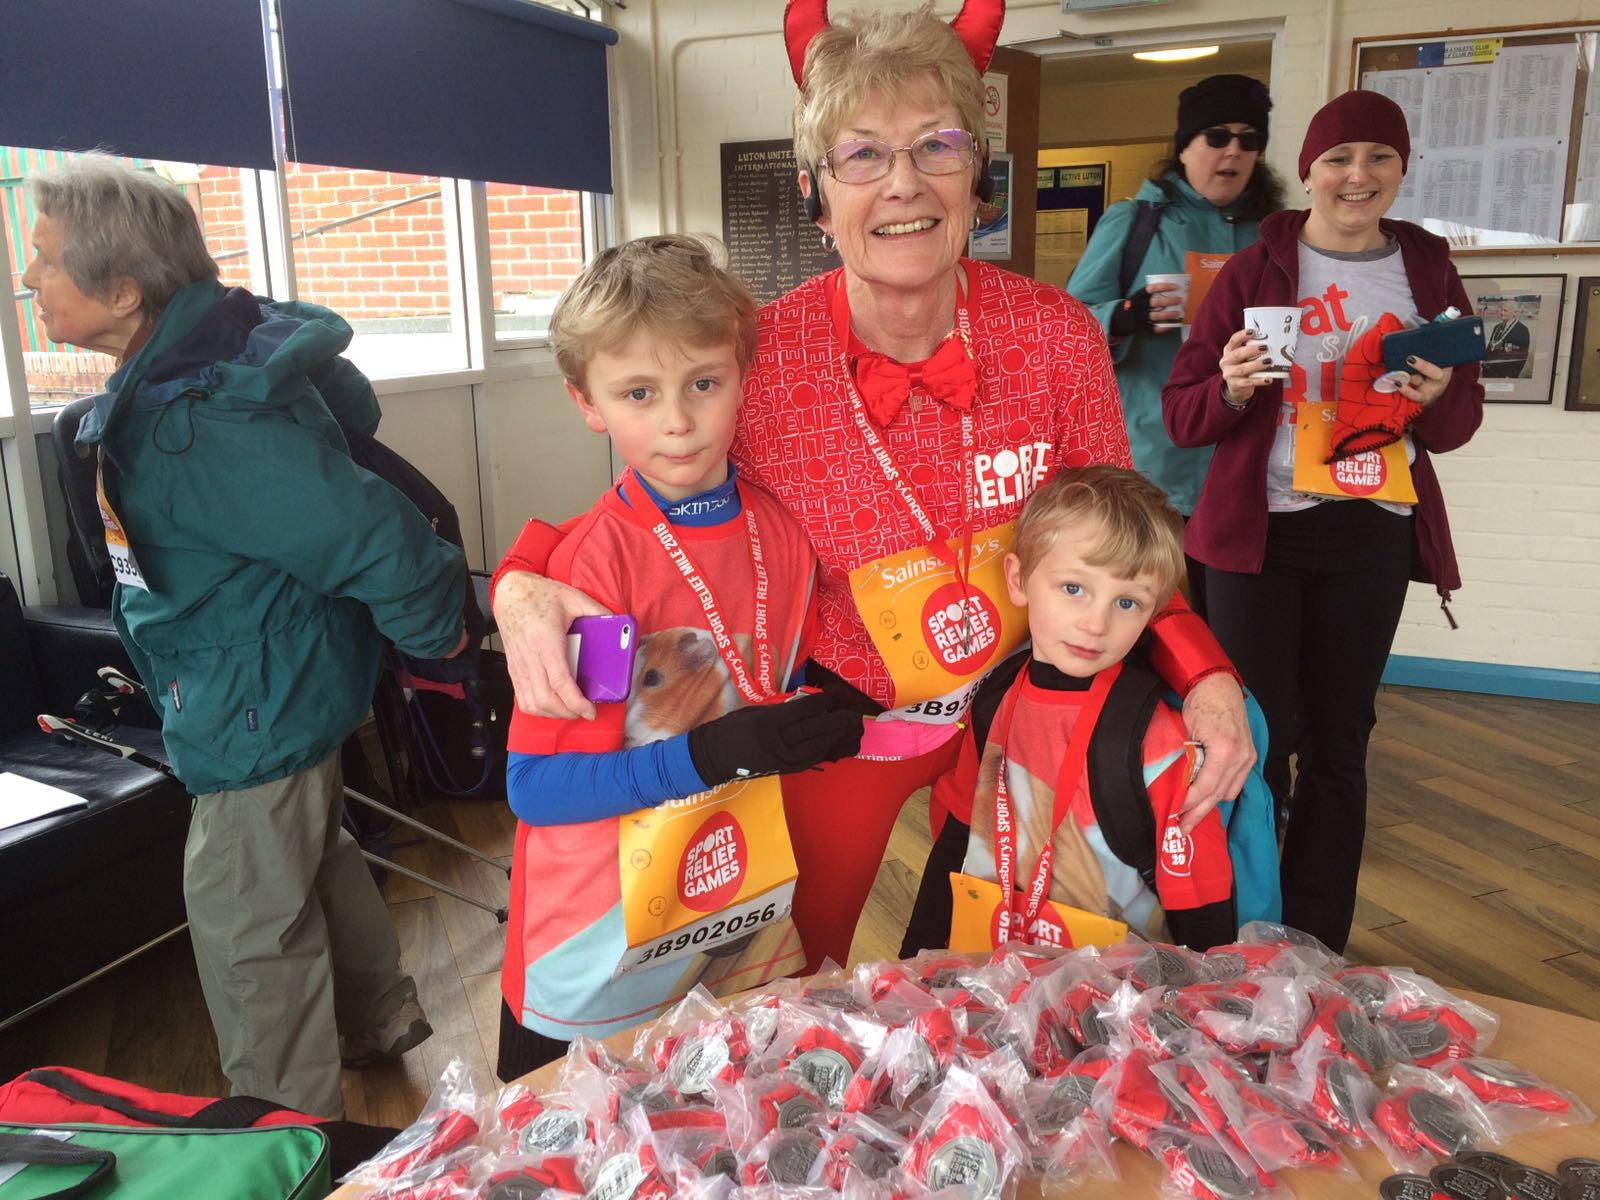 Sport Relief at Stockwood Park Athletics Centre